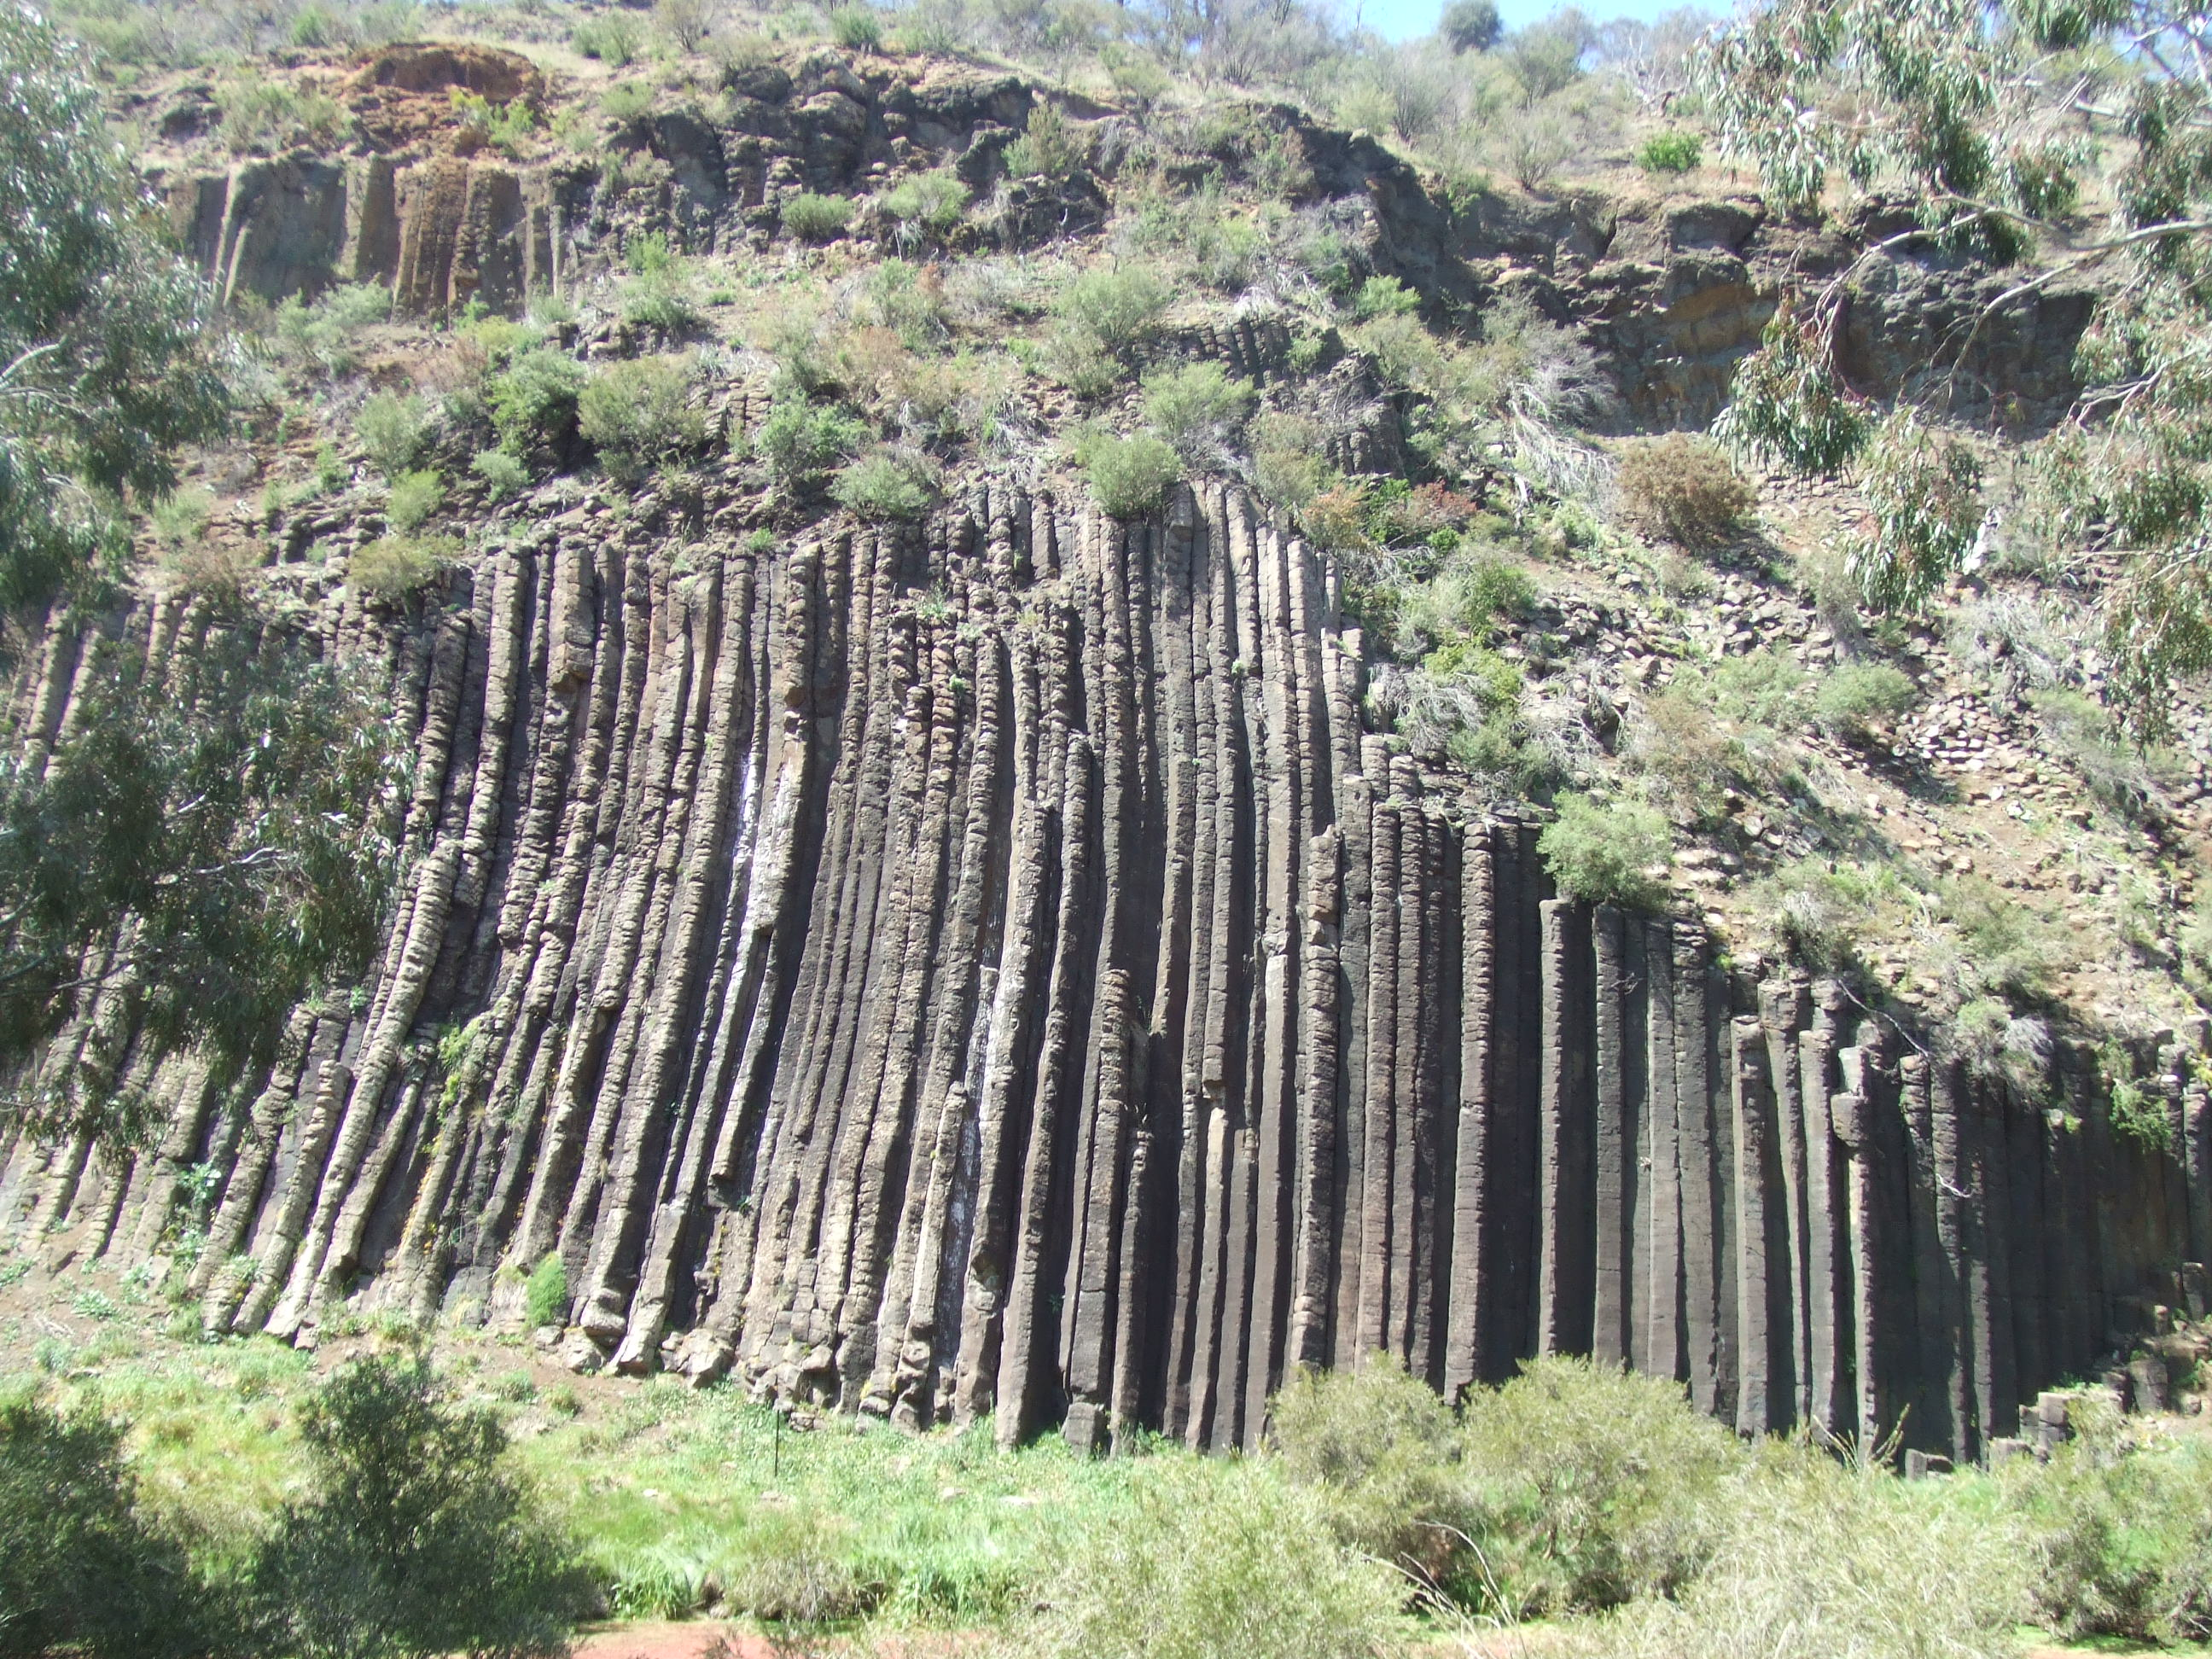 (Organ Pipes National Park | en.wikipedia.org)